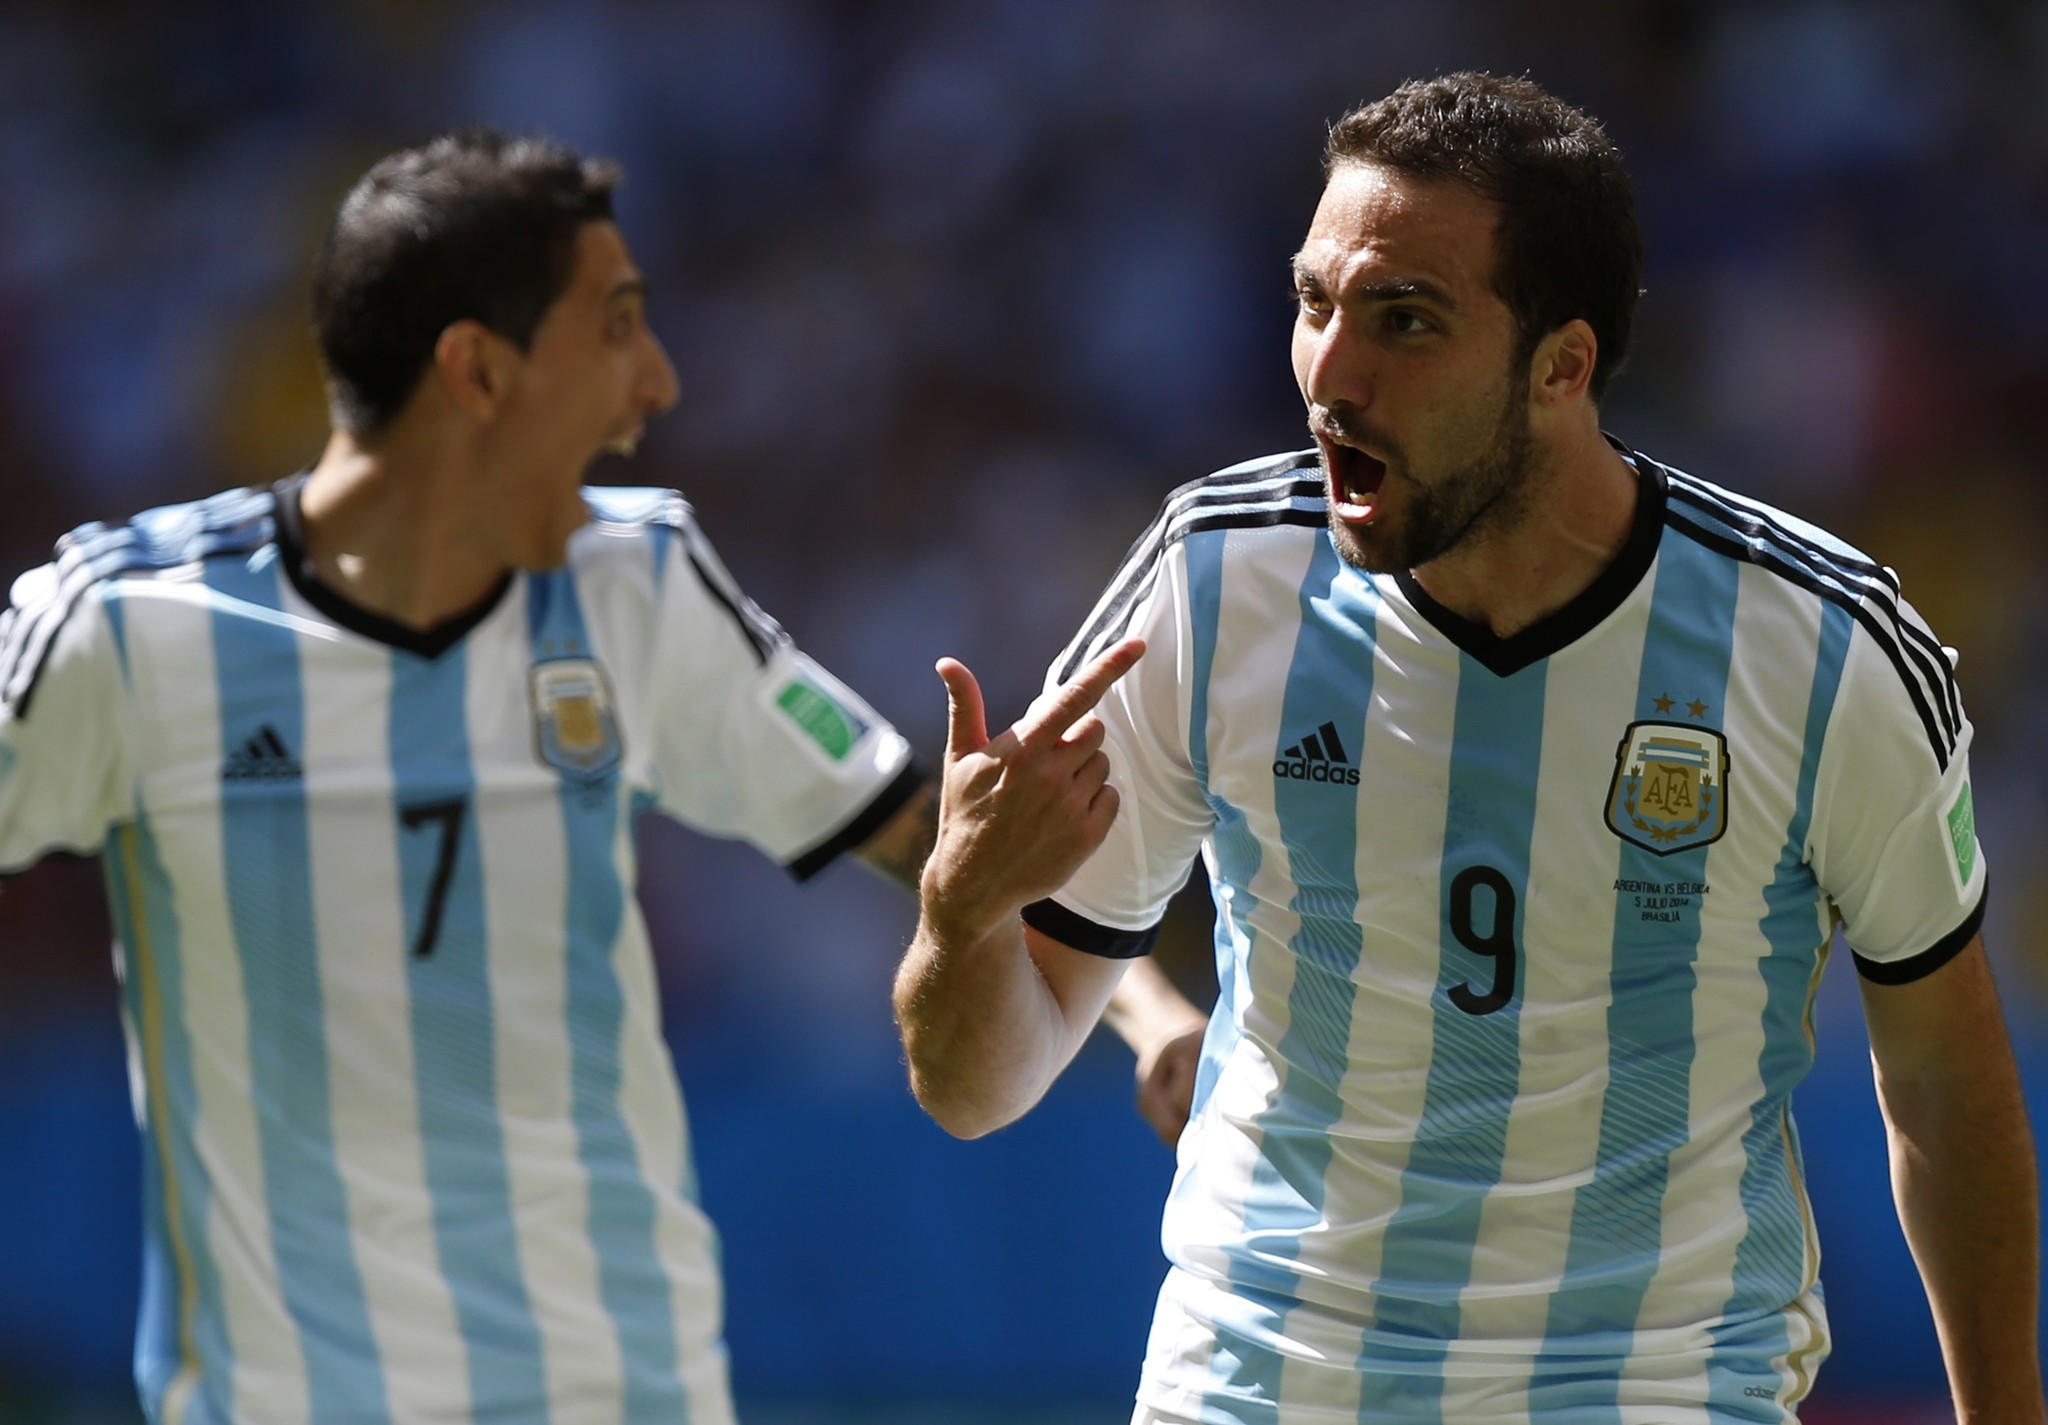 Argentina's Gonzalo Higuain (right) celebrates next to teammate Angel Di Maria after scoring a goal against Belgium during their 2014 World Cup quarter-finals at the Brasilia national stadium in Brasilia July 5, 2014.